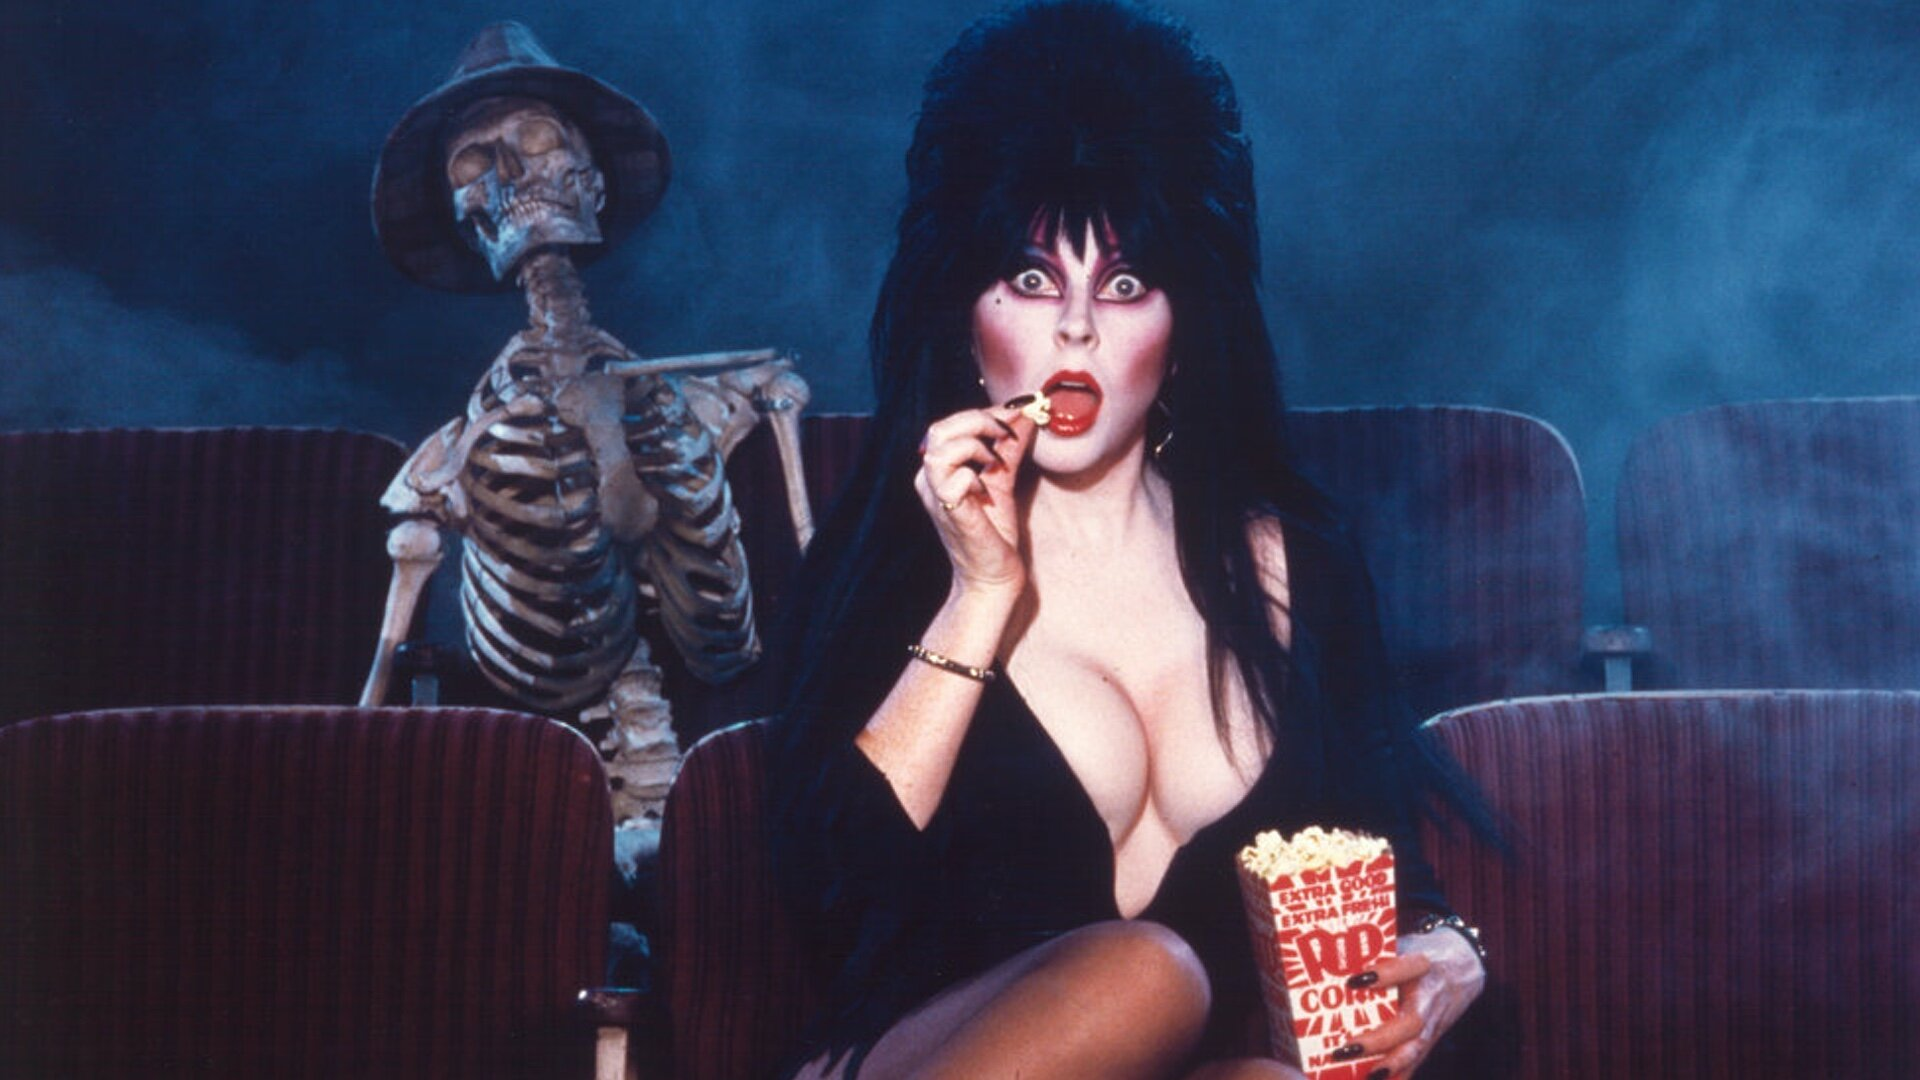 Here Is The List Of Horror Movies Recommended By Elvira To Watch